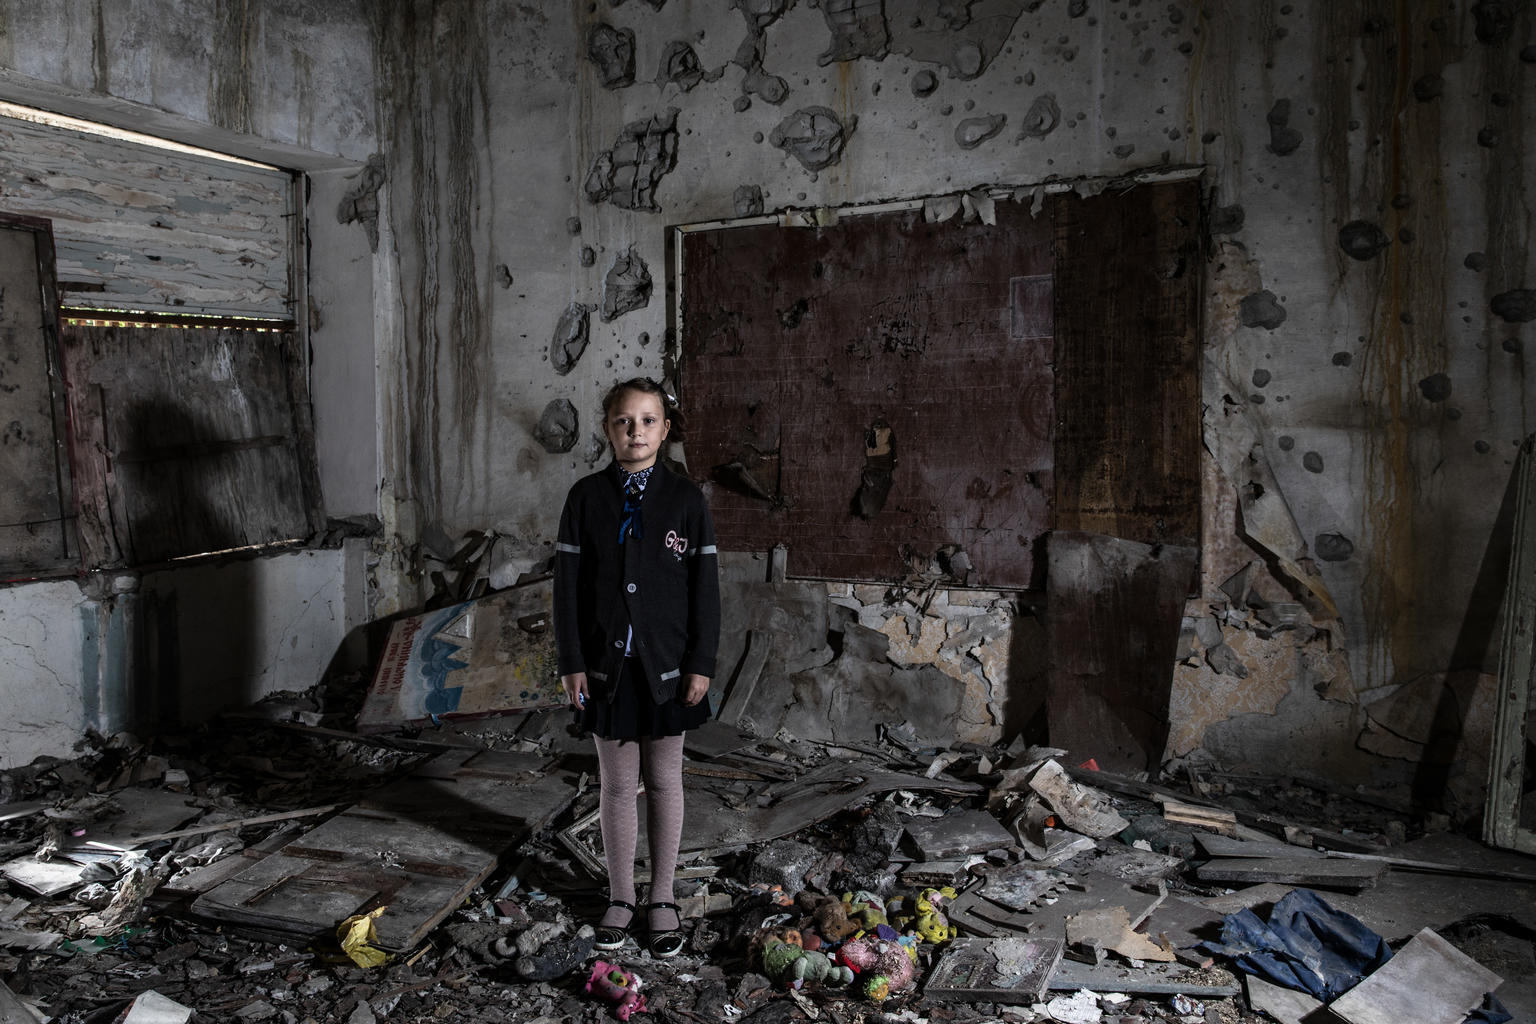 A young girl stands in a room that is now largely rubble.